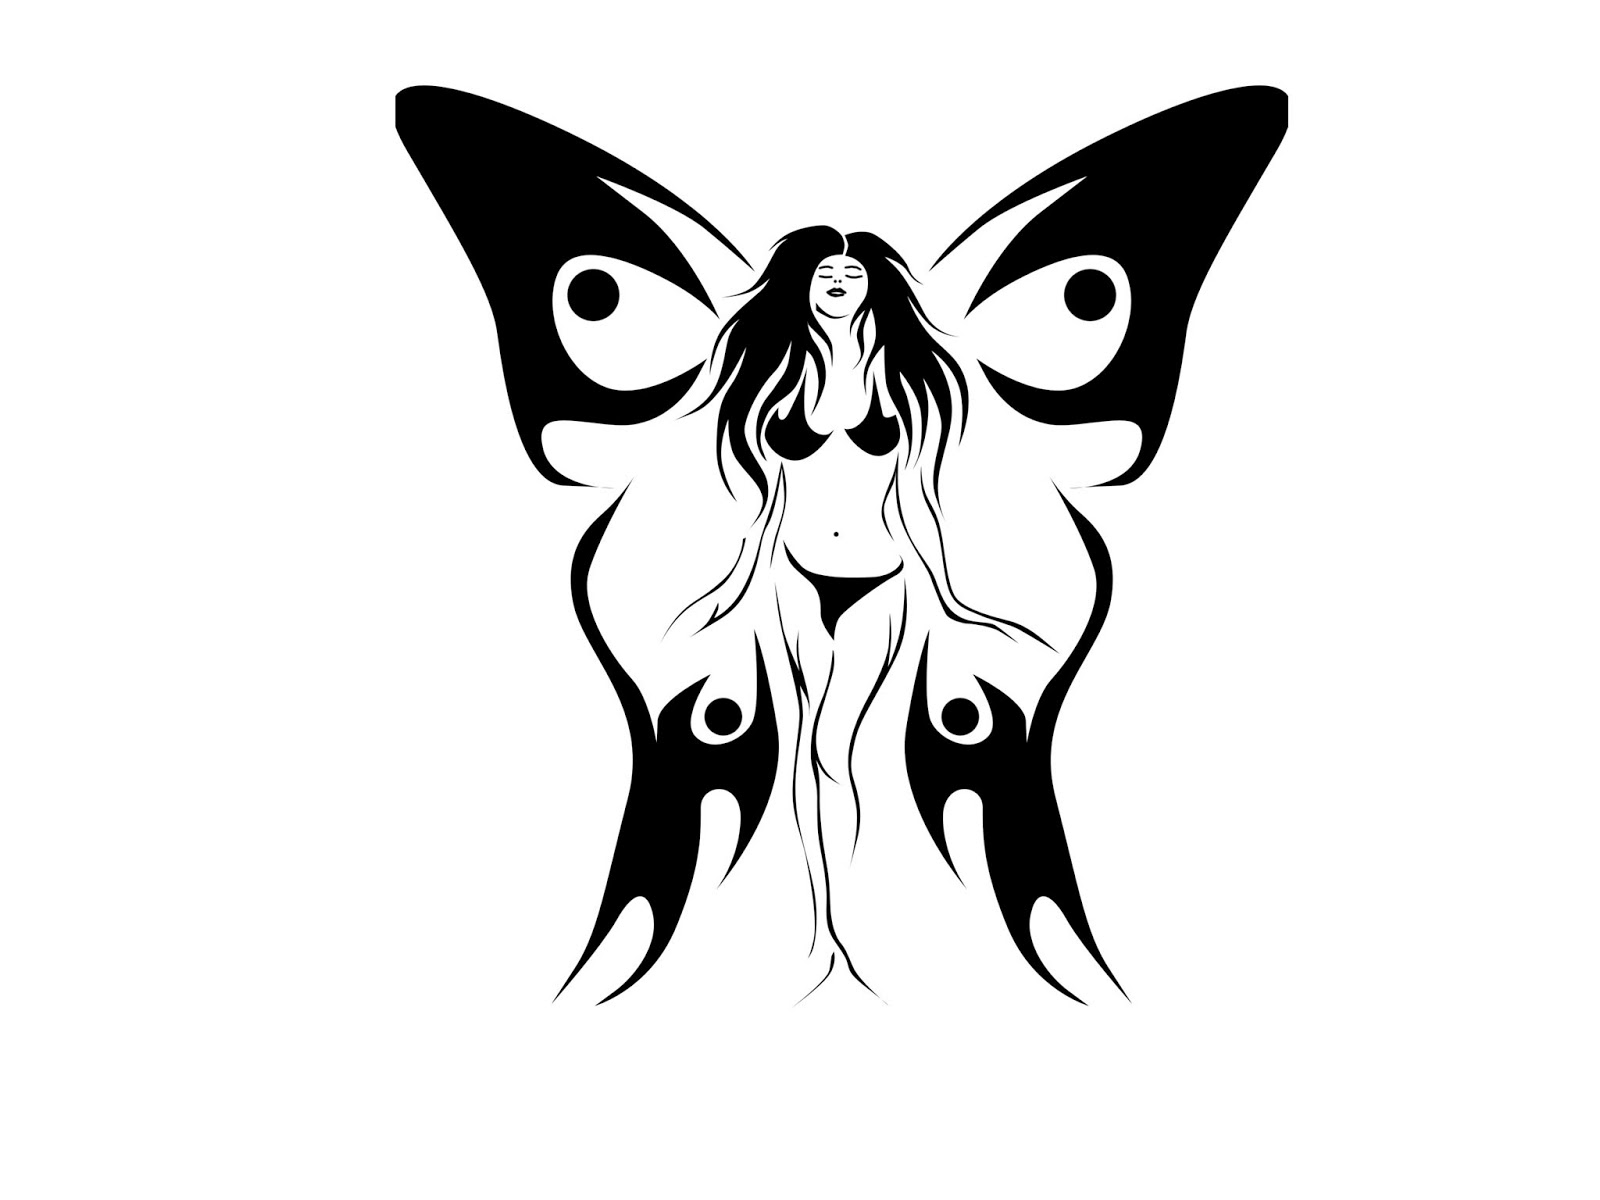 Butterfly tattoos images free download